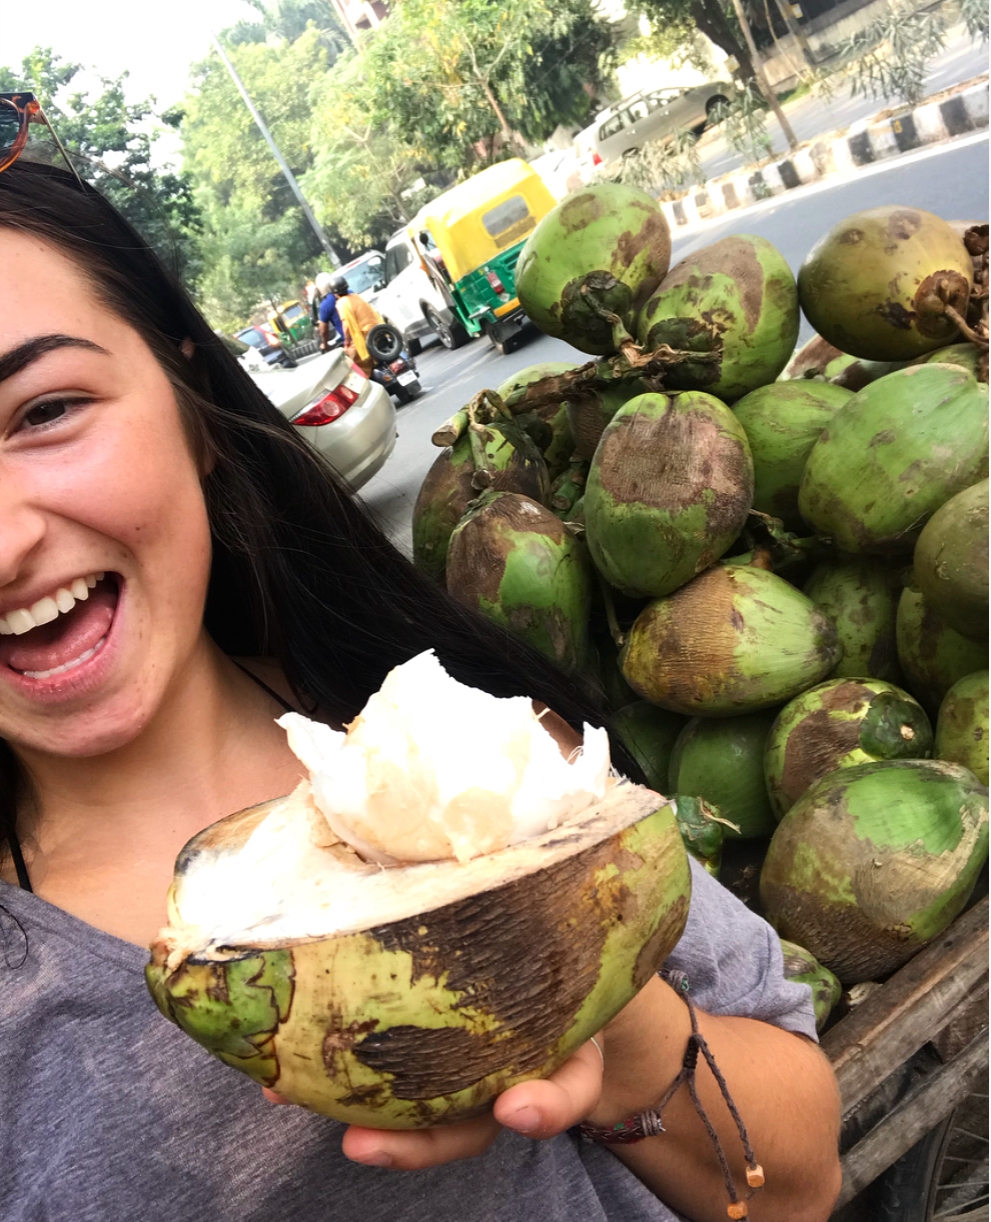 A bit excited that I got to eat the coconut flesh after I drank the water.